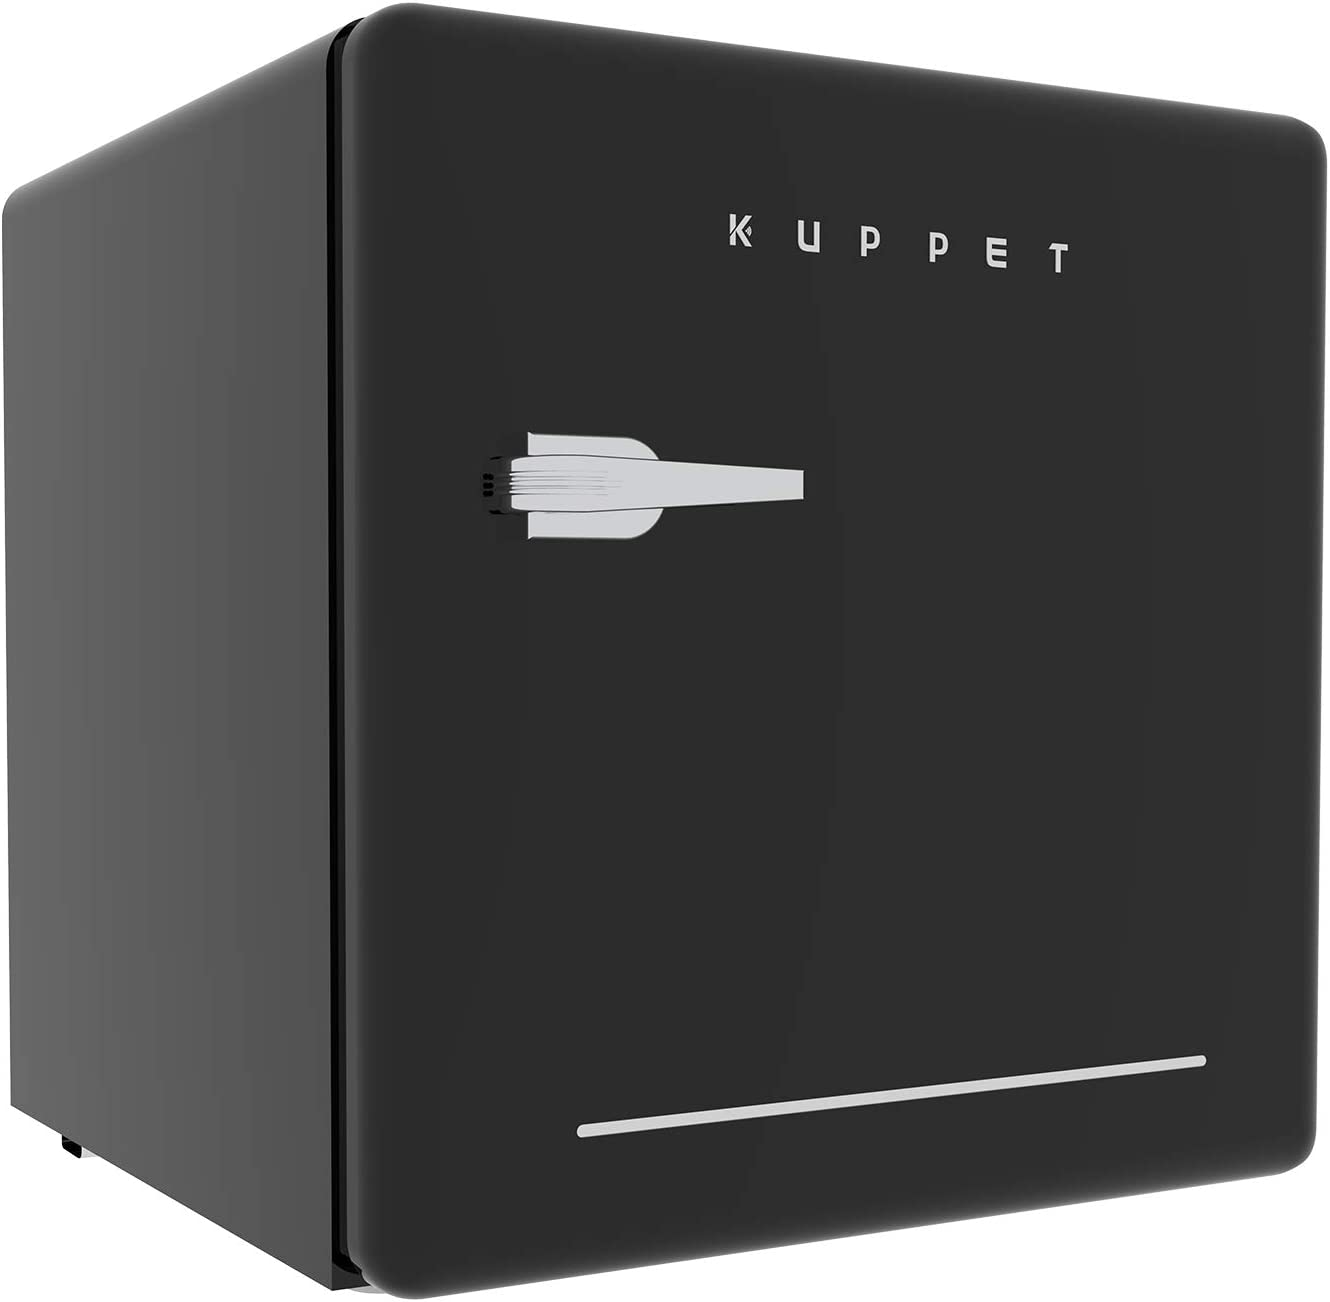 KUPPET Classic Retro Compact Refrigerator Single Door, Mini Fridge with Freezer, Small Drink Chiller for Home,Office,Dorm, Small beauty cosmetics Skin care mask refrigerated for home,1.6 Cu.Ft Black